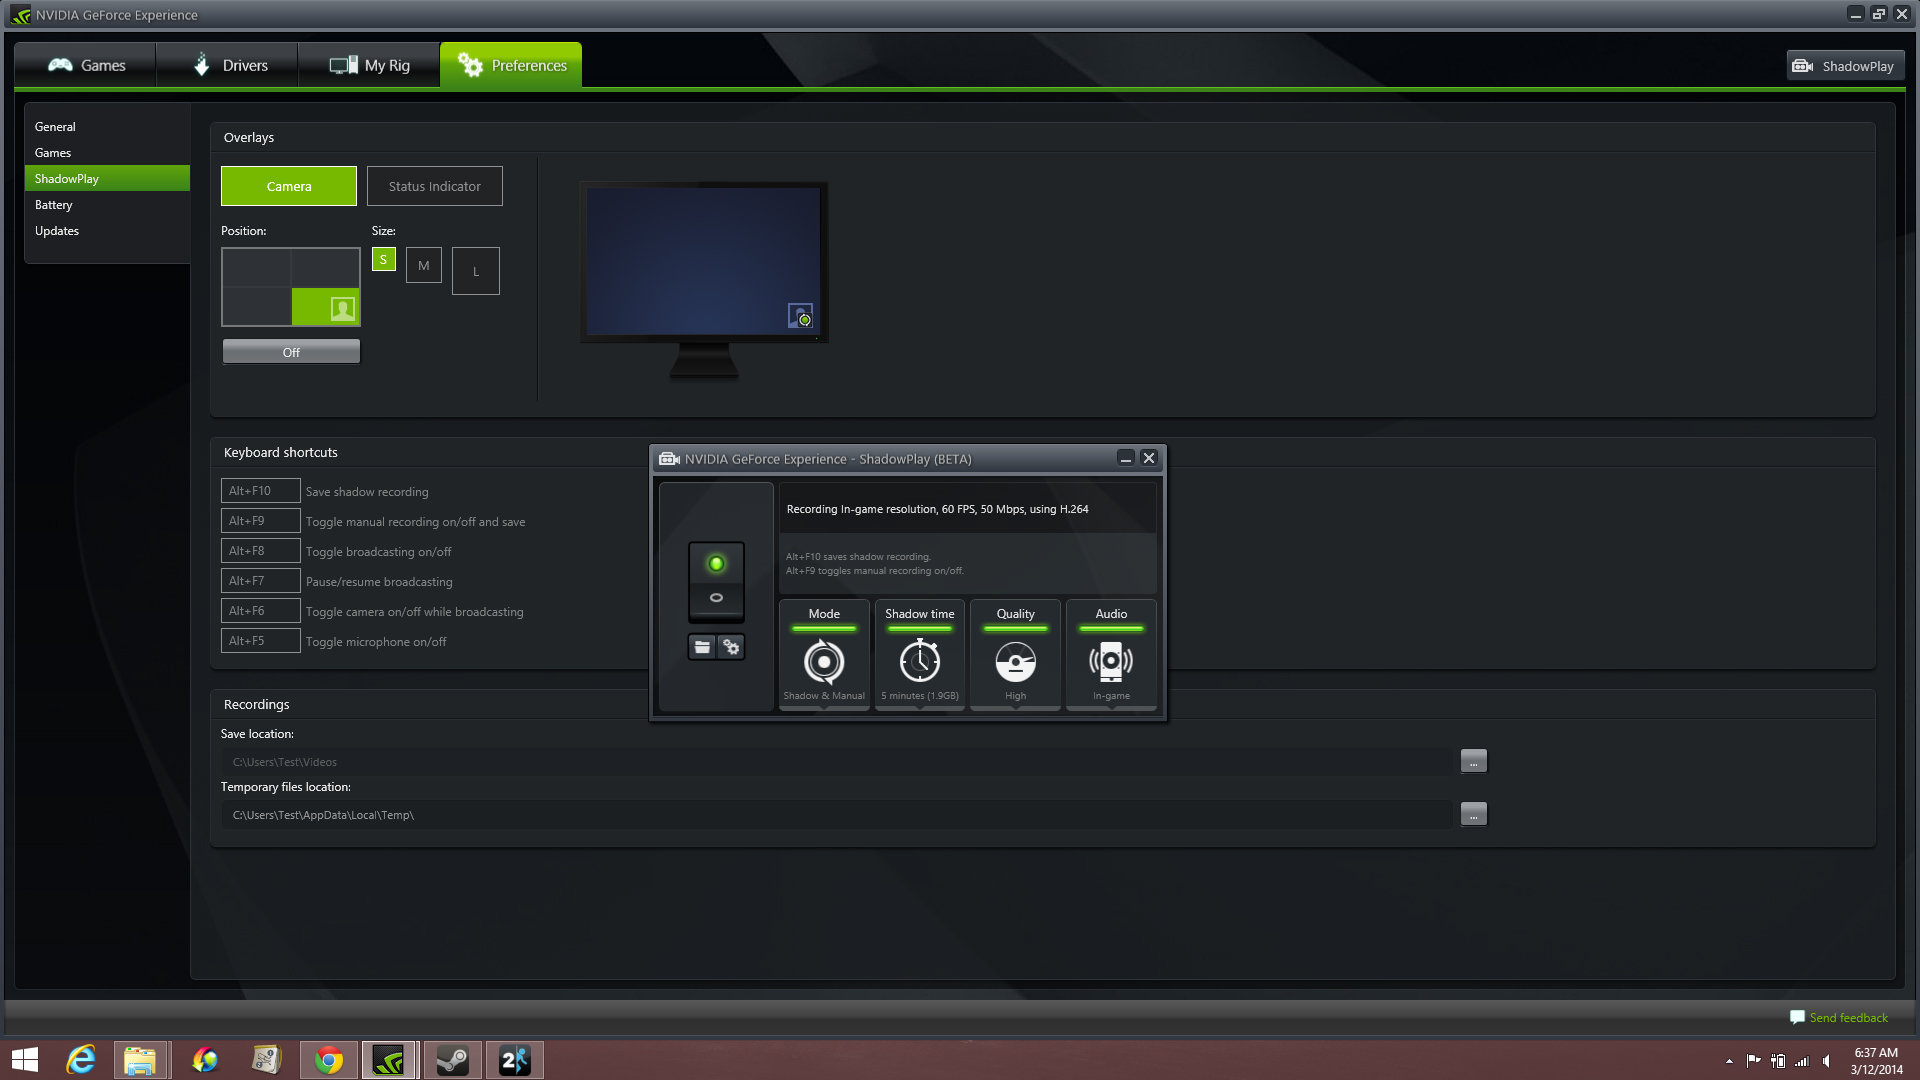 ShadowPlay, Nvidia's game-recording/broadcasting tool